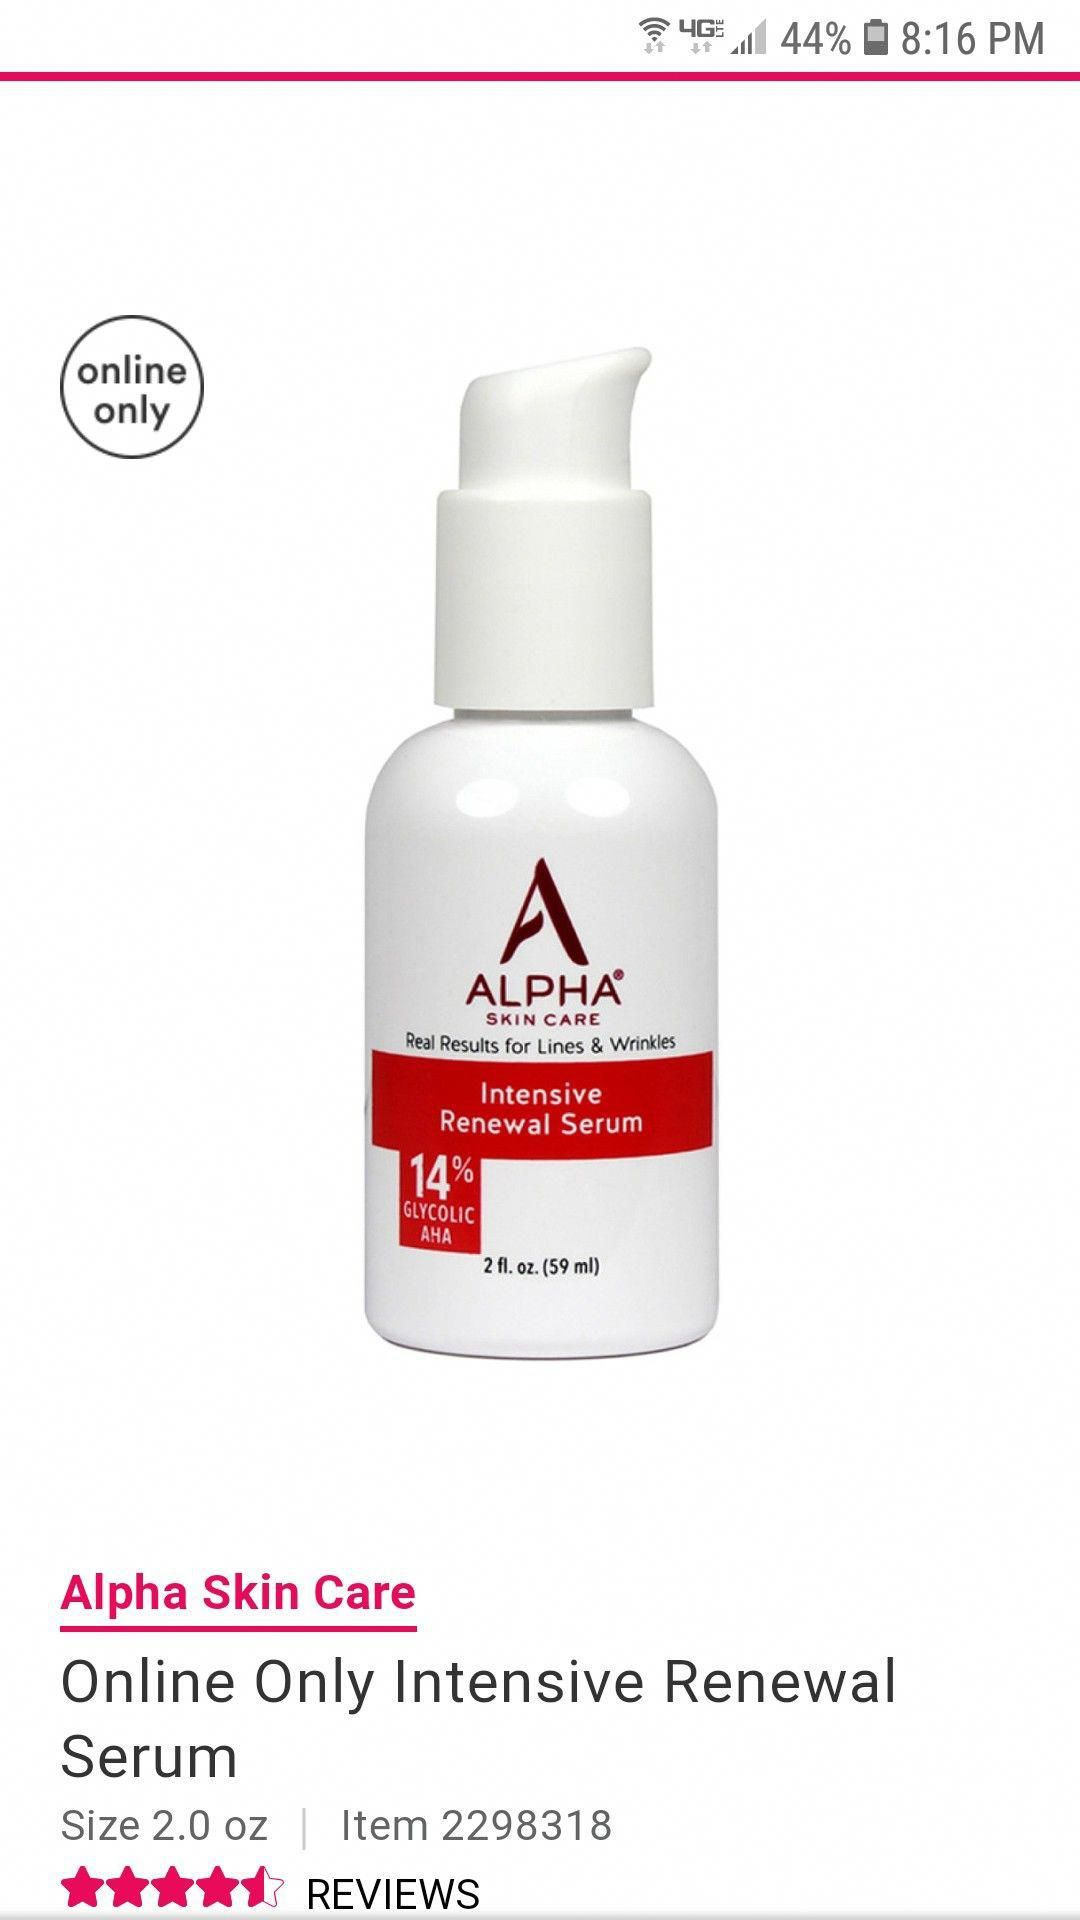 Effective At Home Chemical Peel In 2020 Brown Spots On Face Spots On Face Intensive Renewal Serum